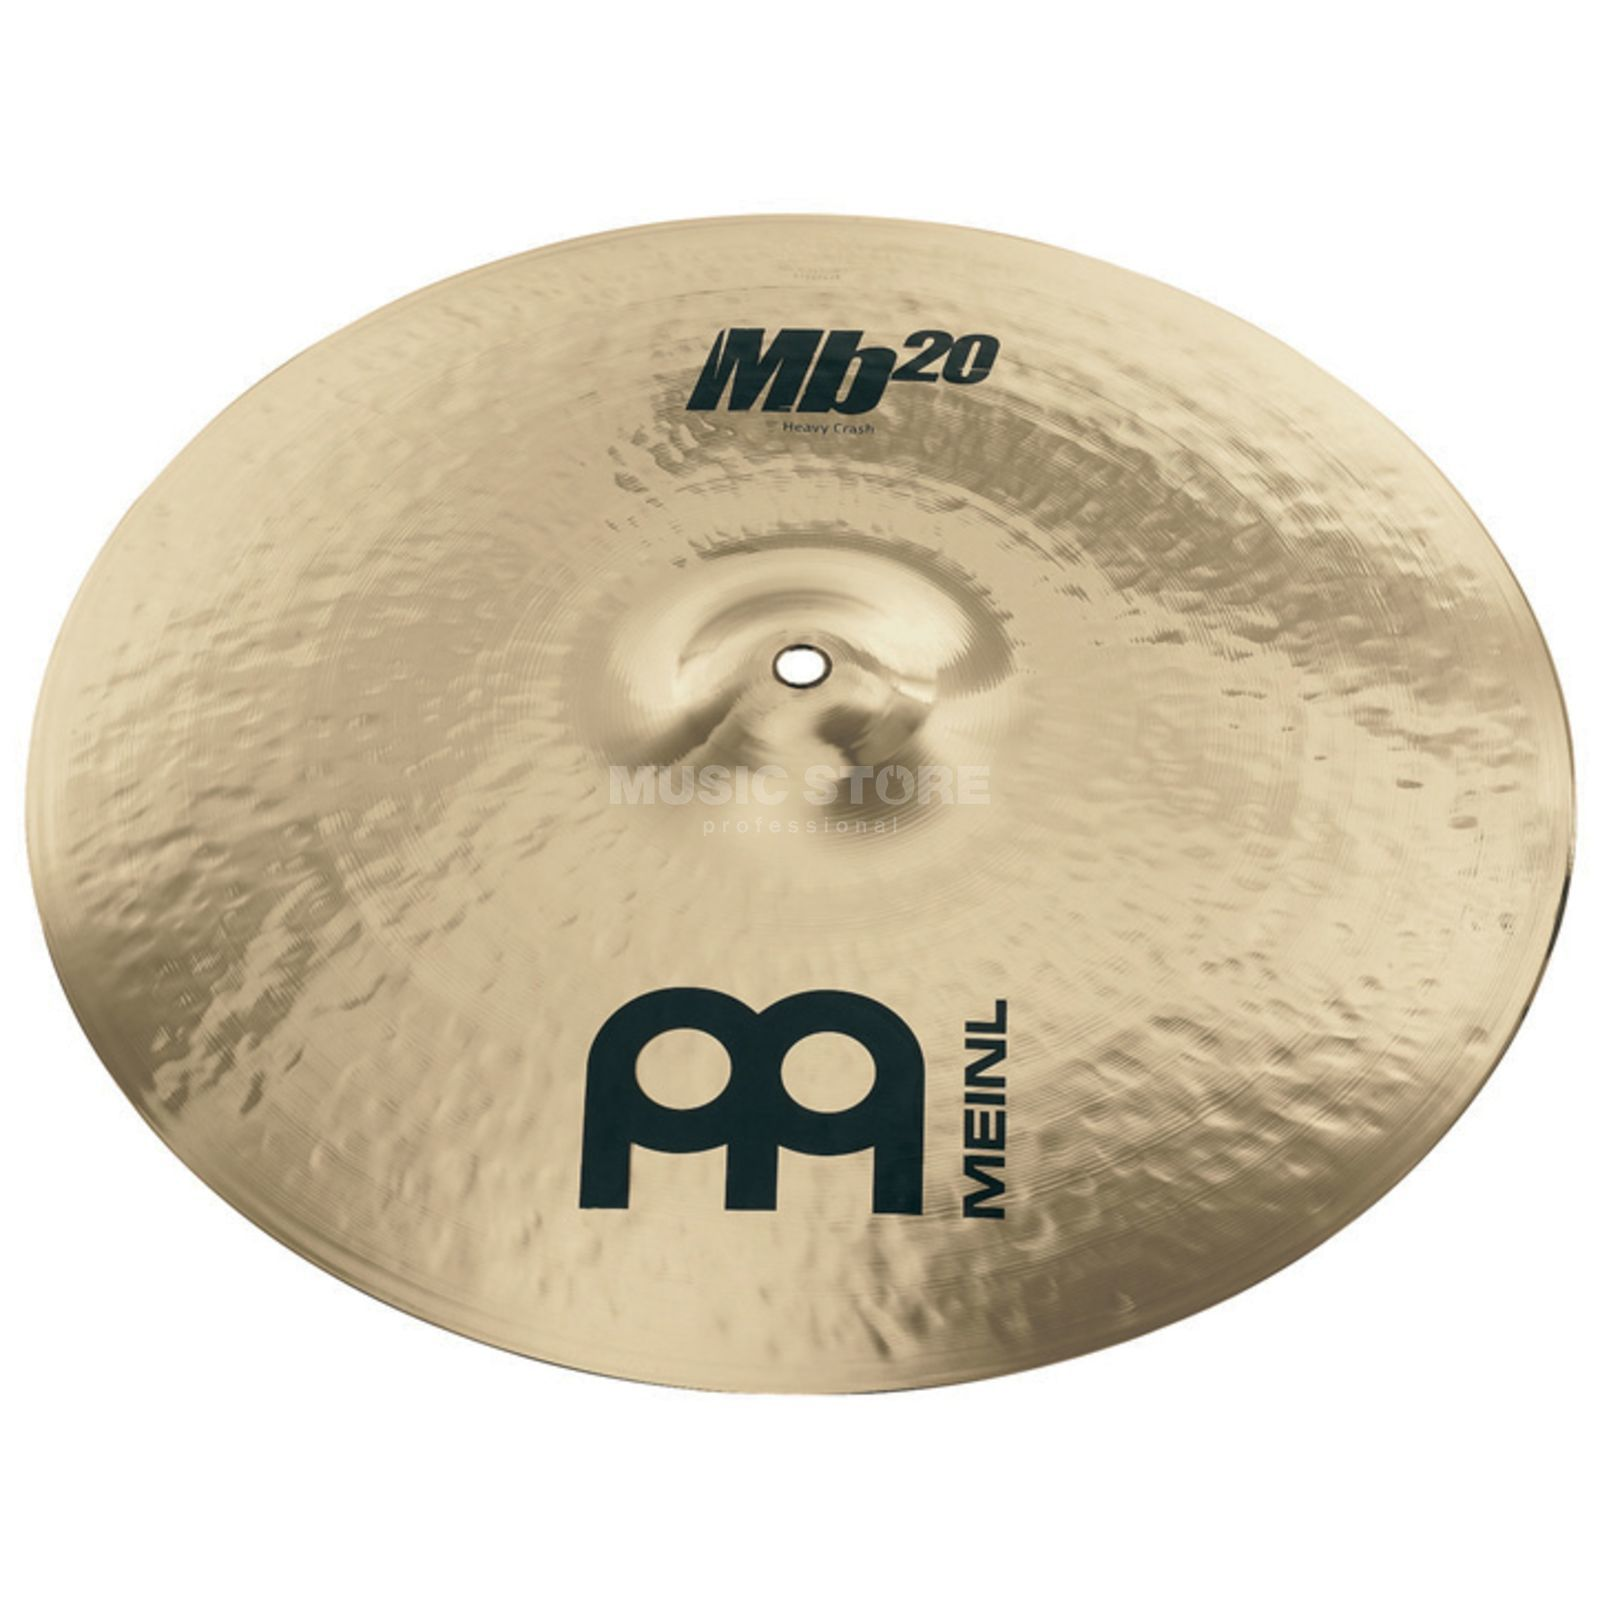 "Meinl MB20 Heavy Crash 16"" MB20-16HC-B, Brilliant Finish Produktbild"